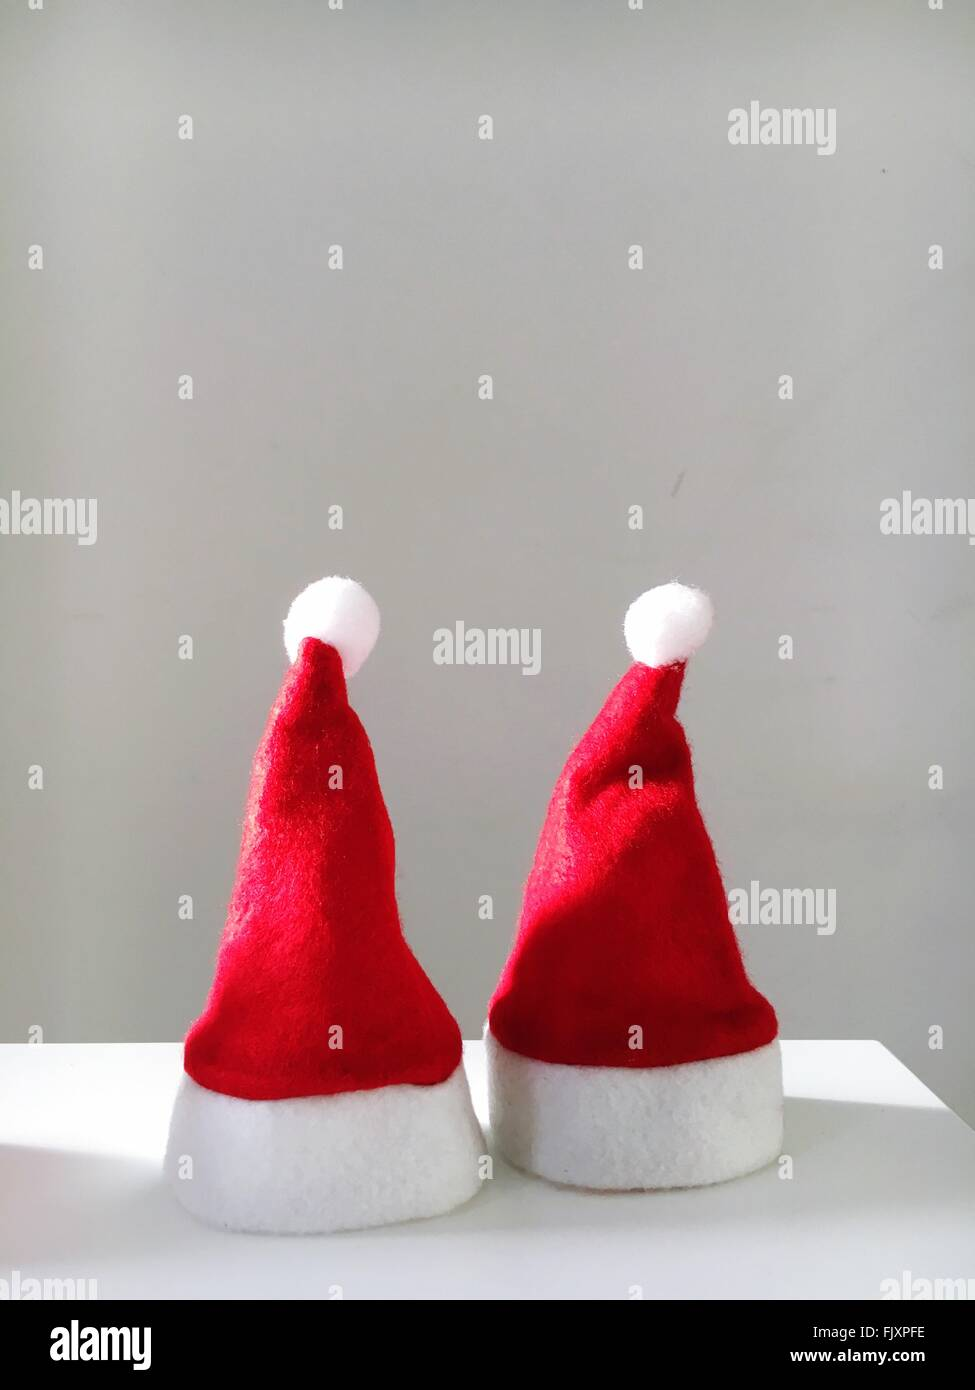 Santa Hats On Table Against Wall - Stock Image